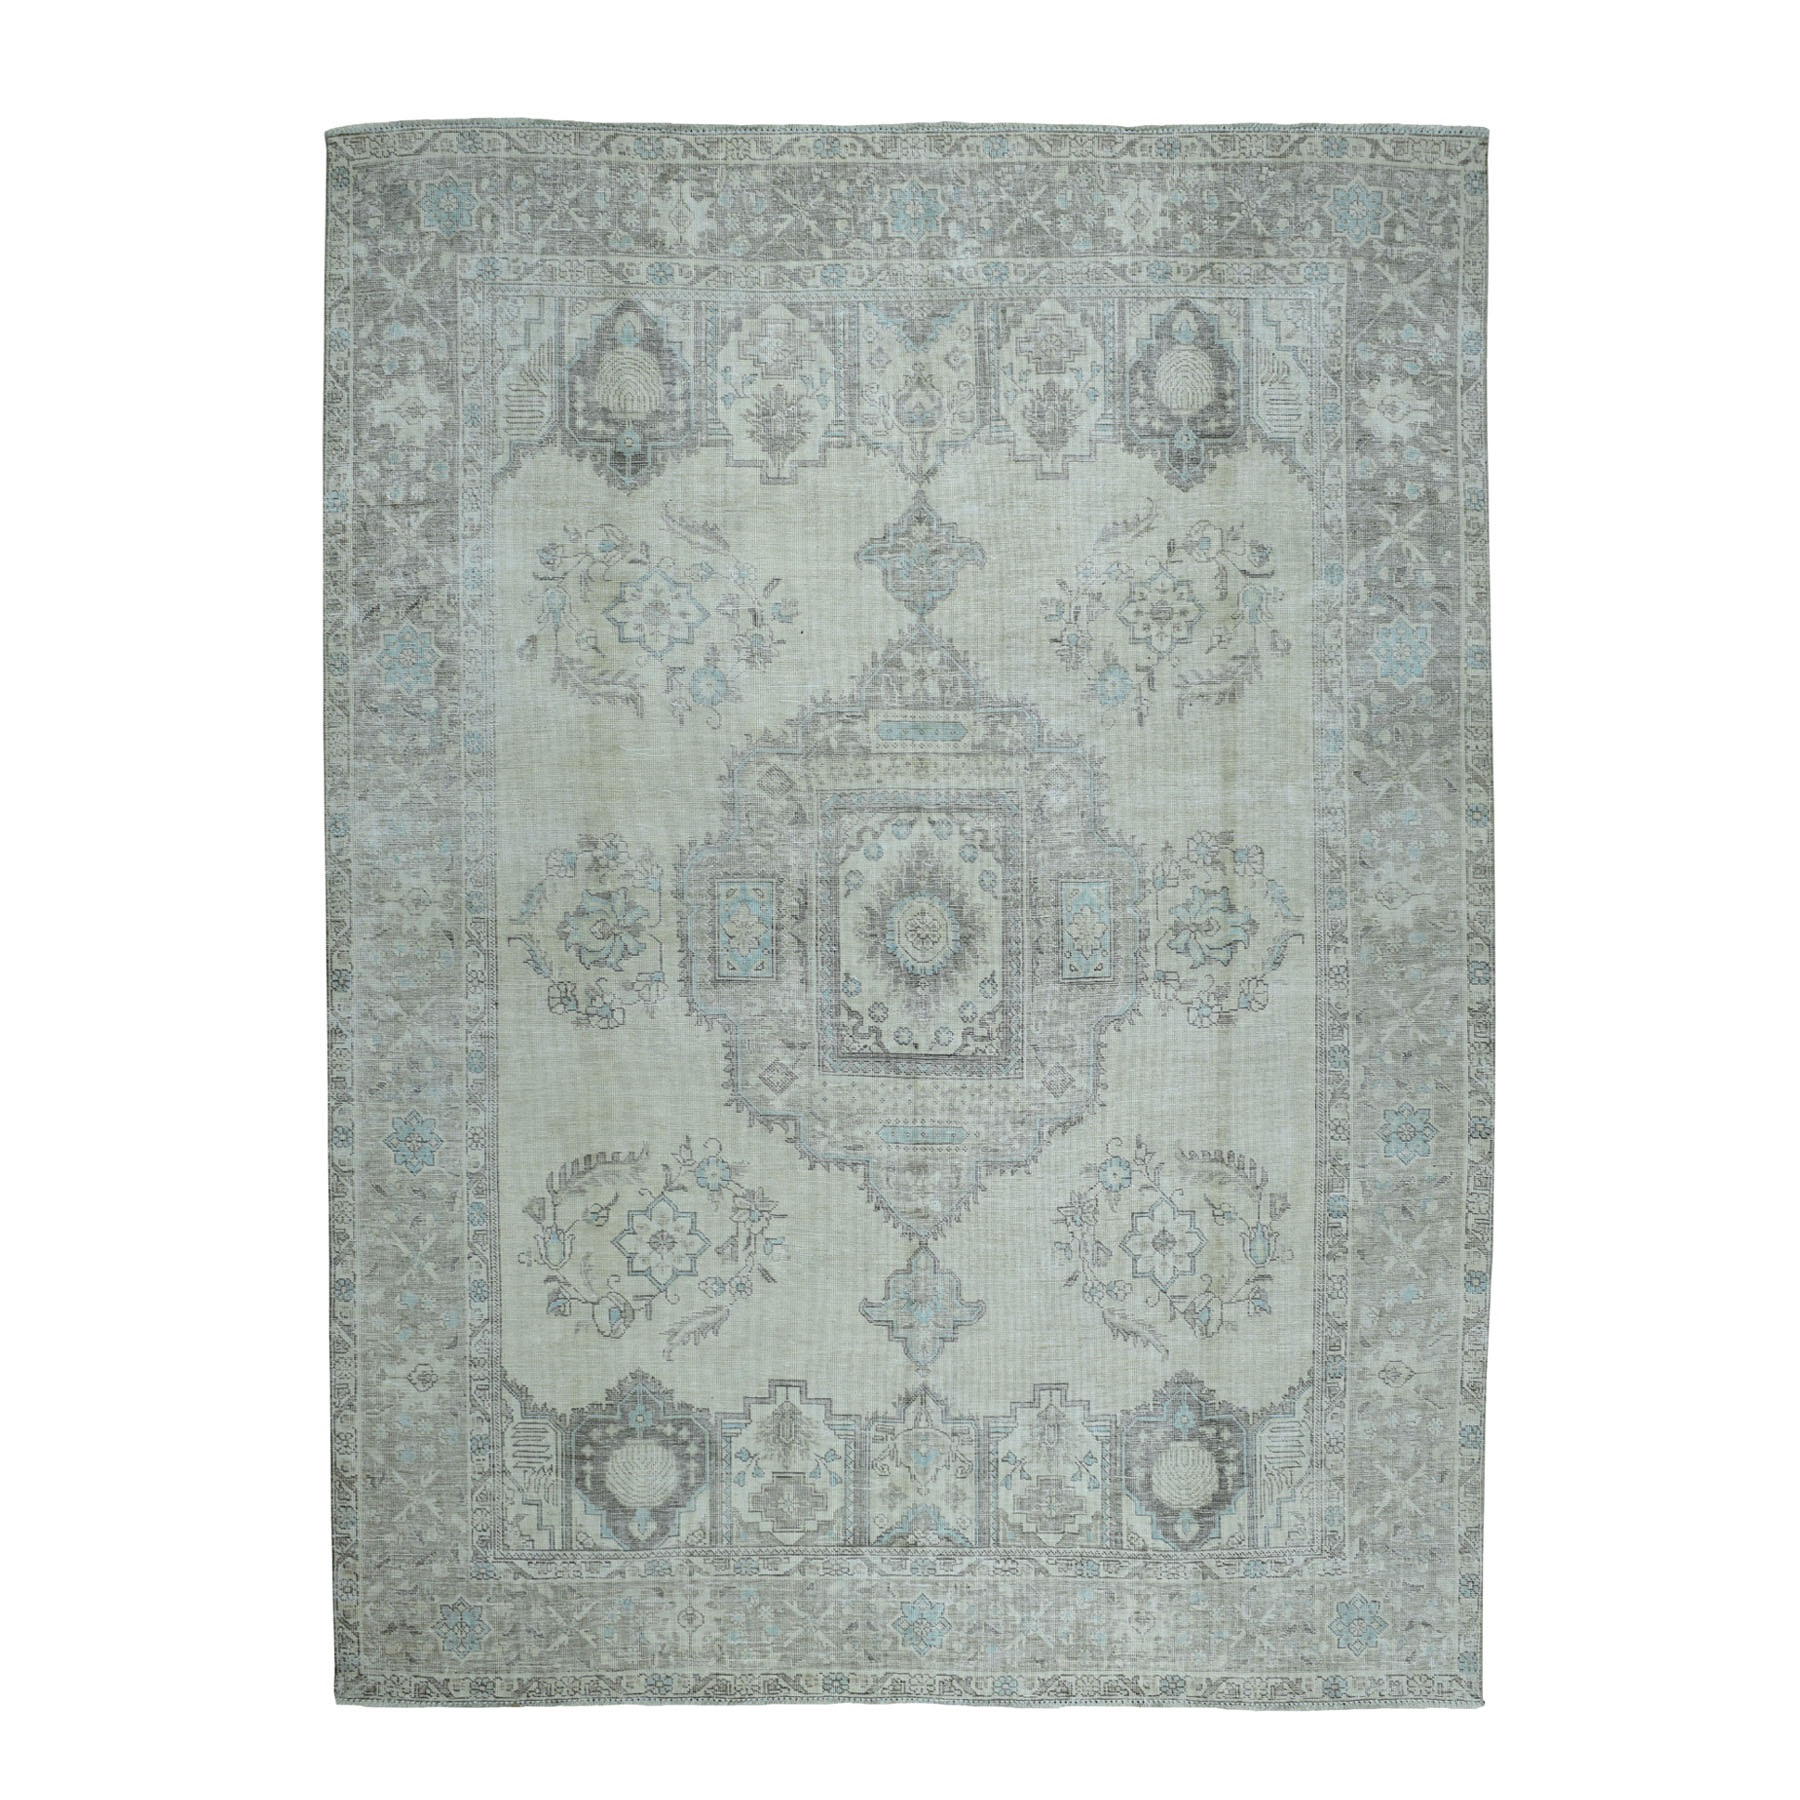 overdyed & vintage rugs LUV469368